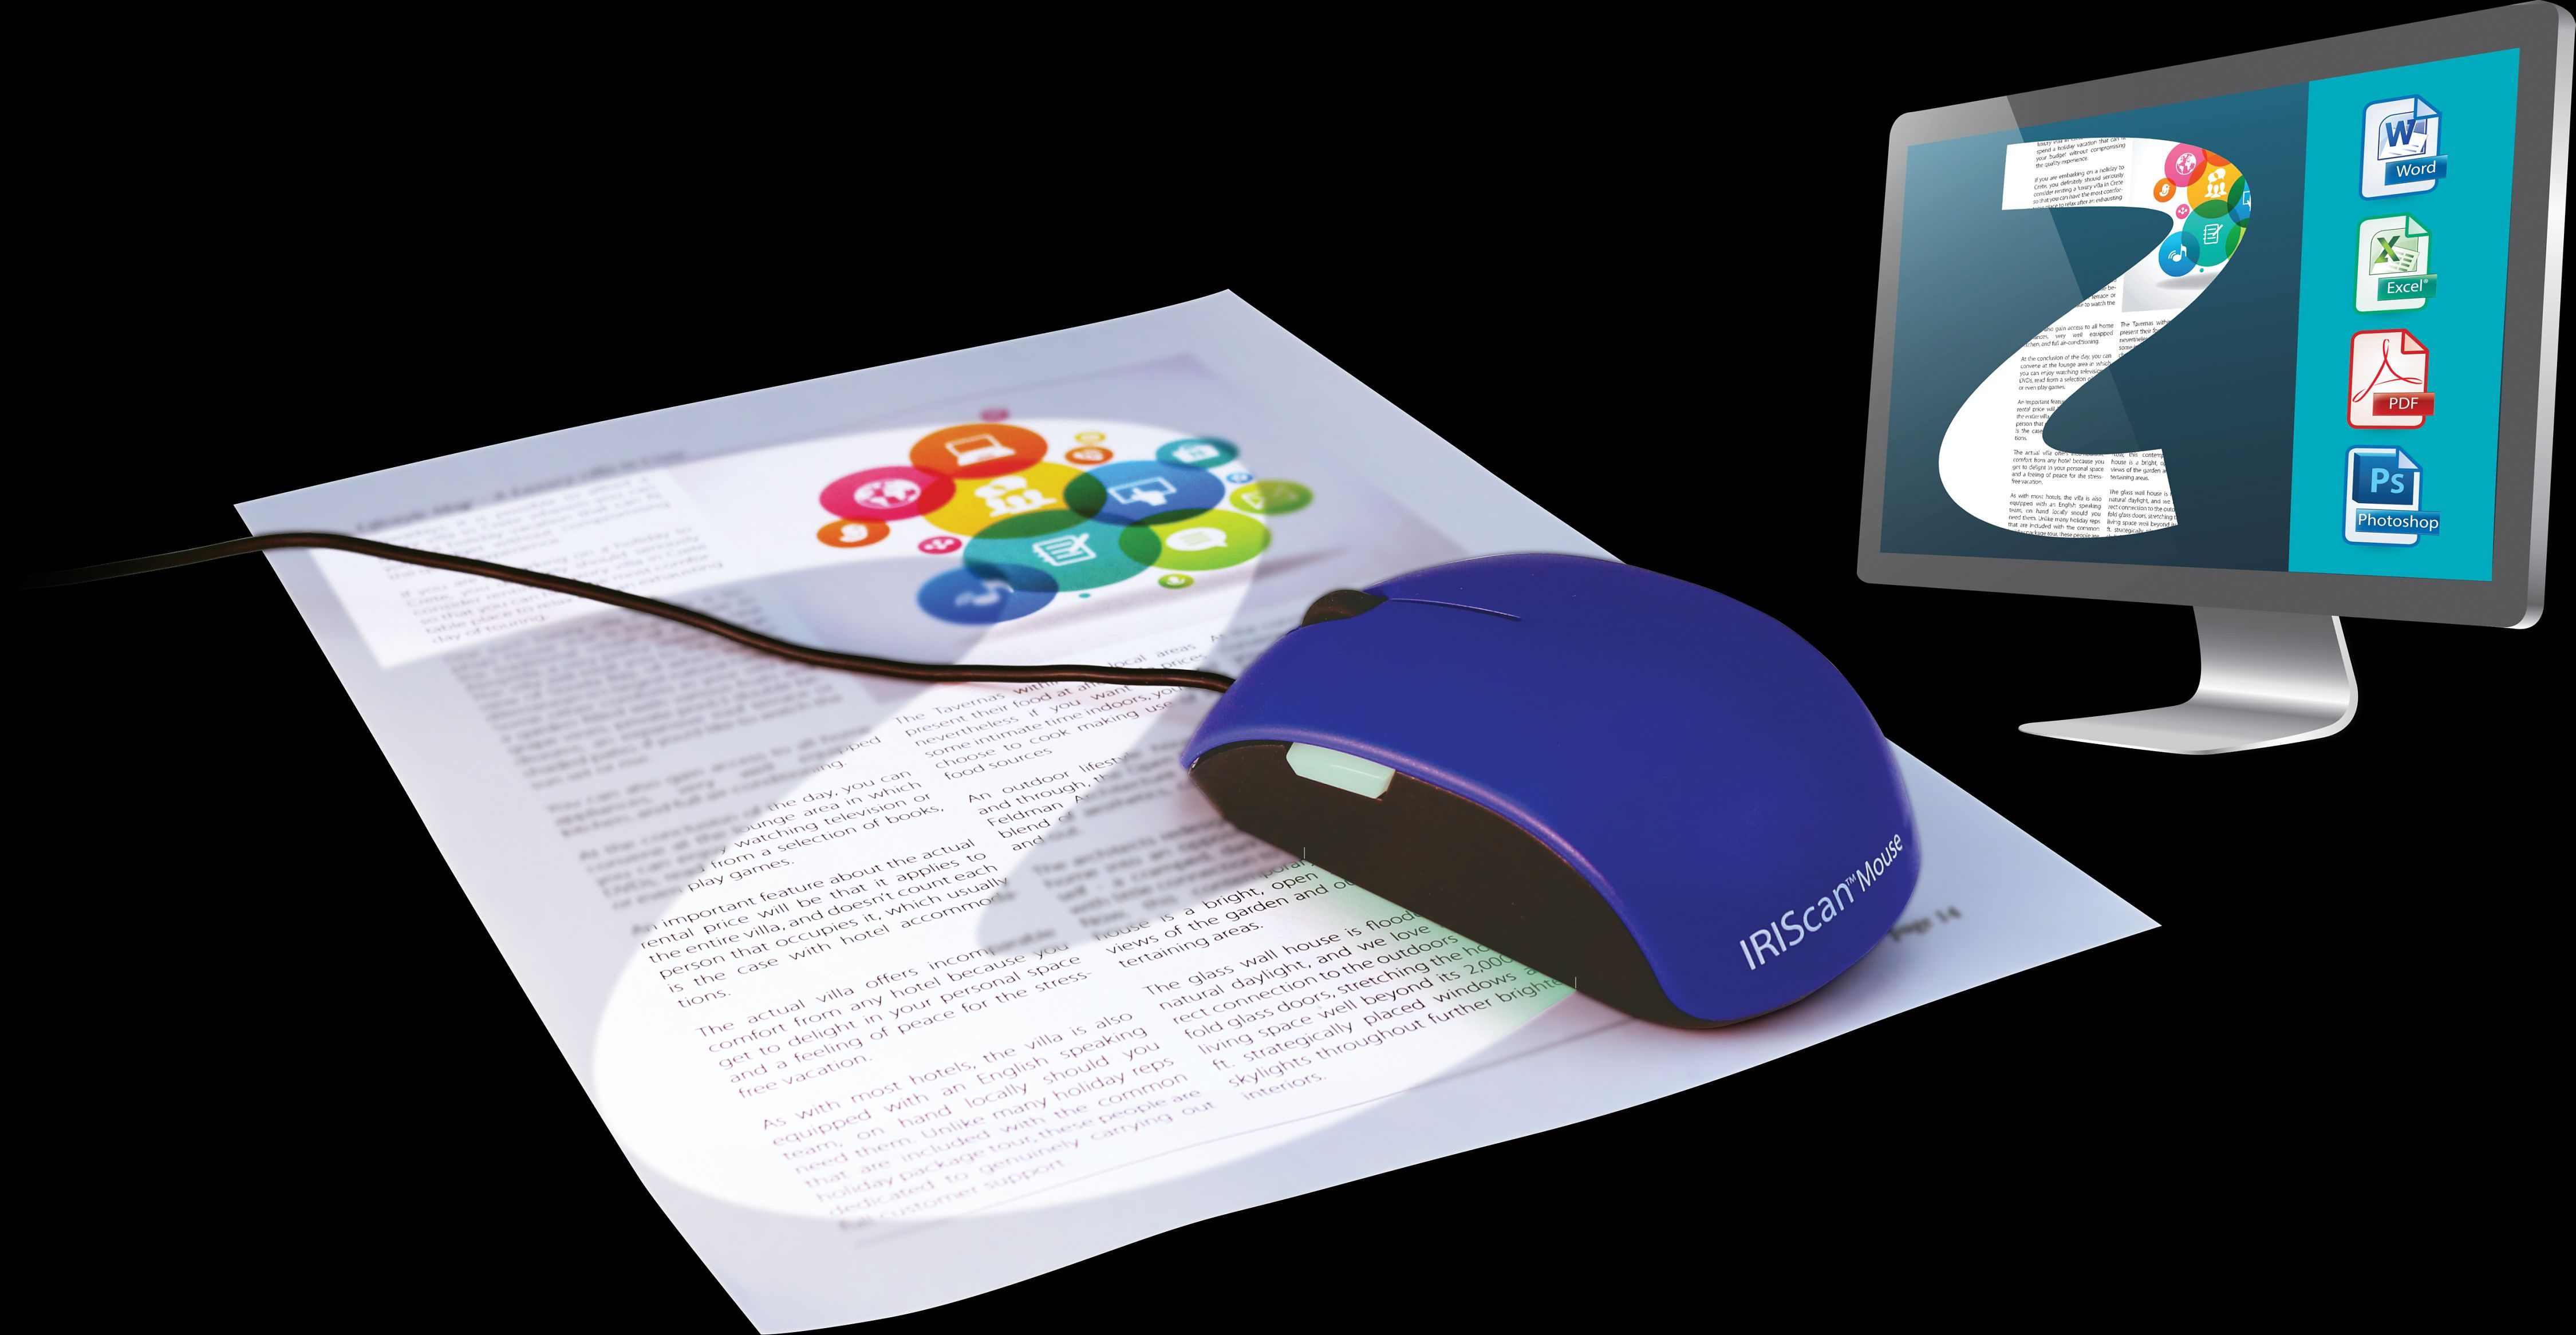 IRIS All-in-One-Mausscanner »IRIS IRIScan Mouse 2 (458124)«